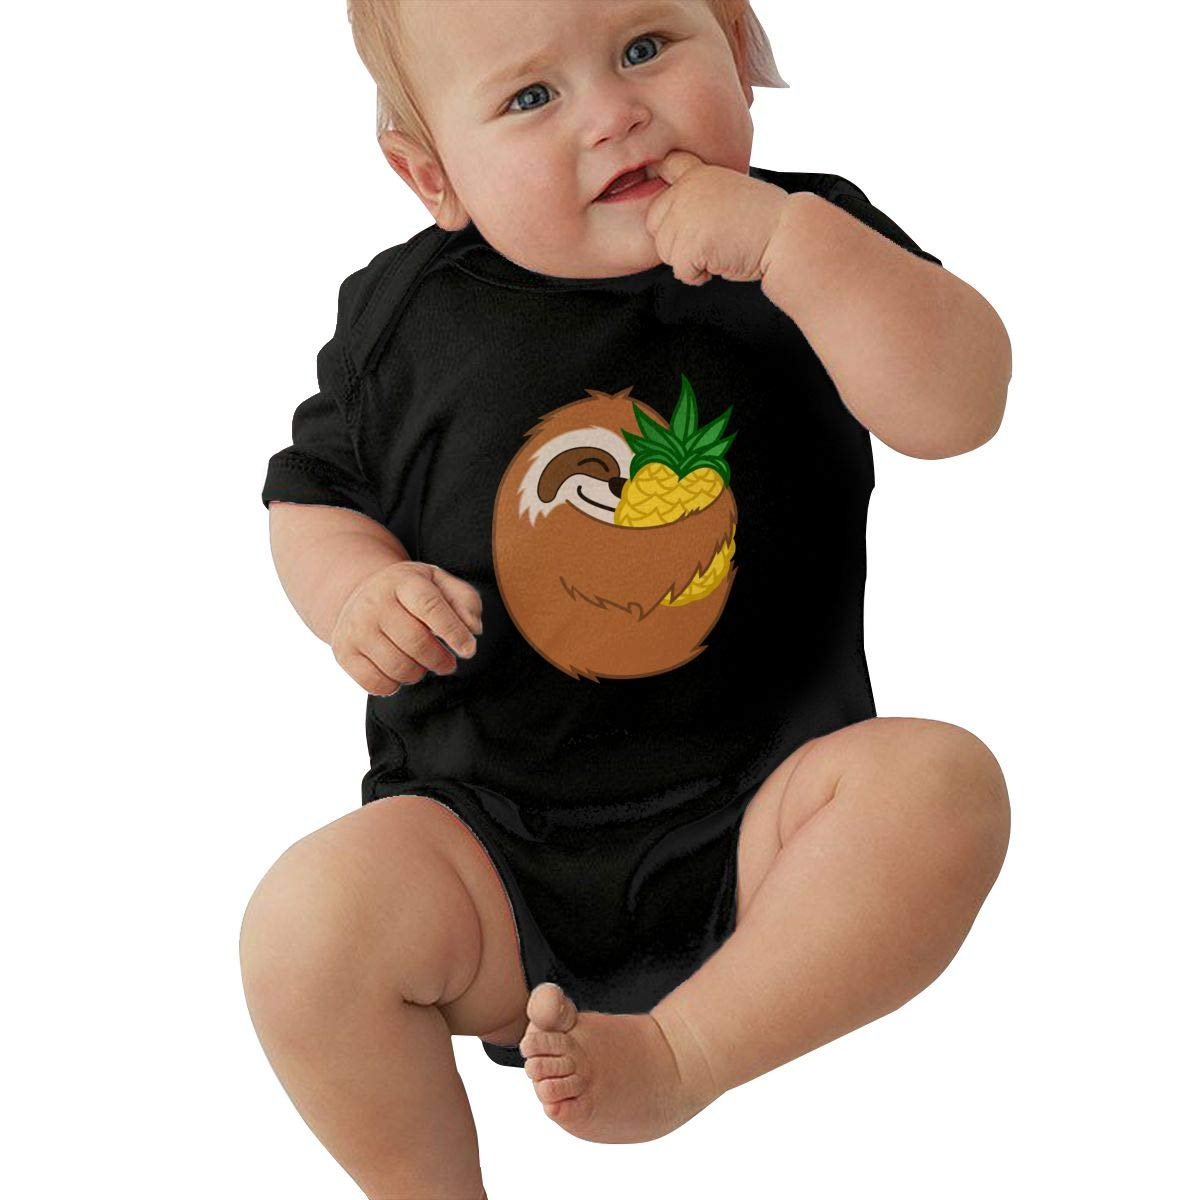 Infant Baby Boys Bodysuit Short-Sleeve Onesie Pineapple Sloth Sloth AABB Print Outfit